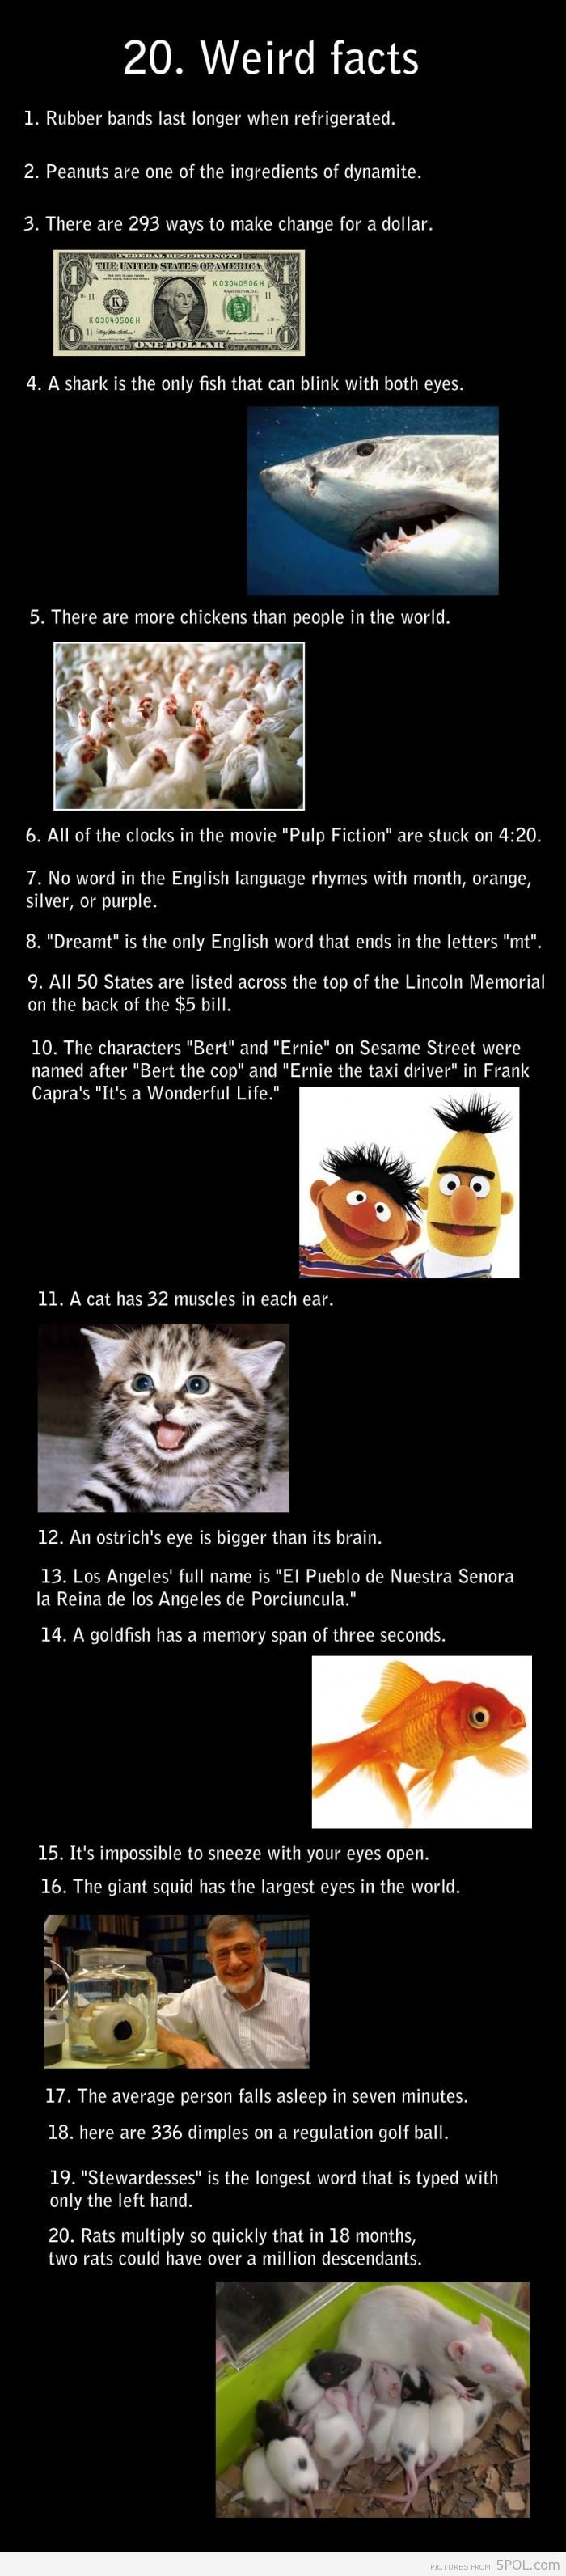 20 weird facts you didn't know